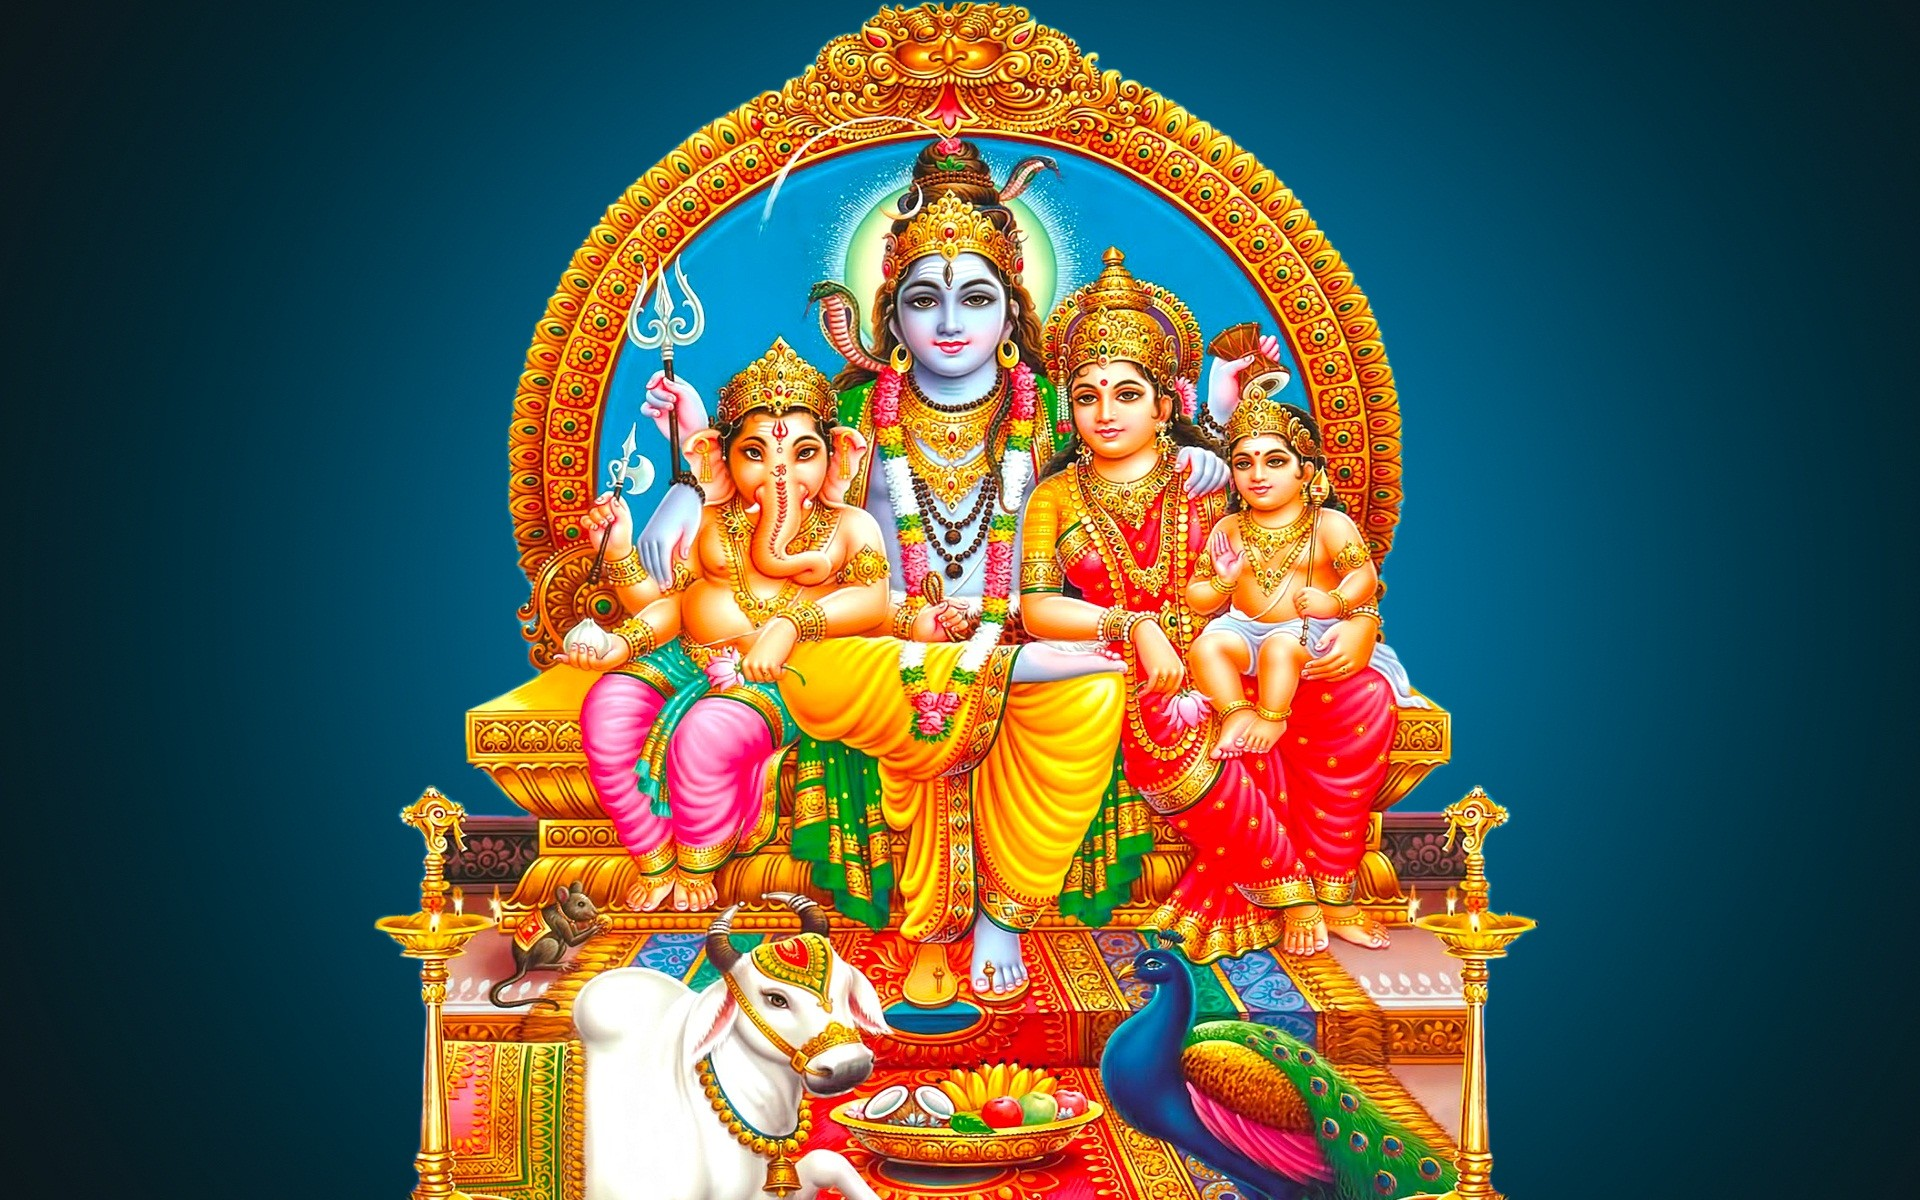 lord shiva parvati wallpapers high resolution images (59)